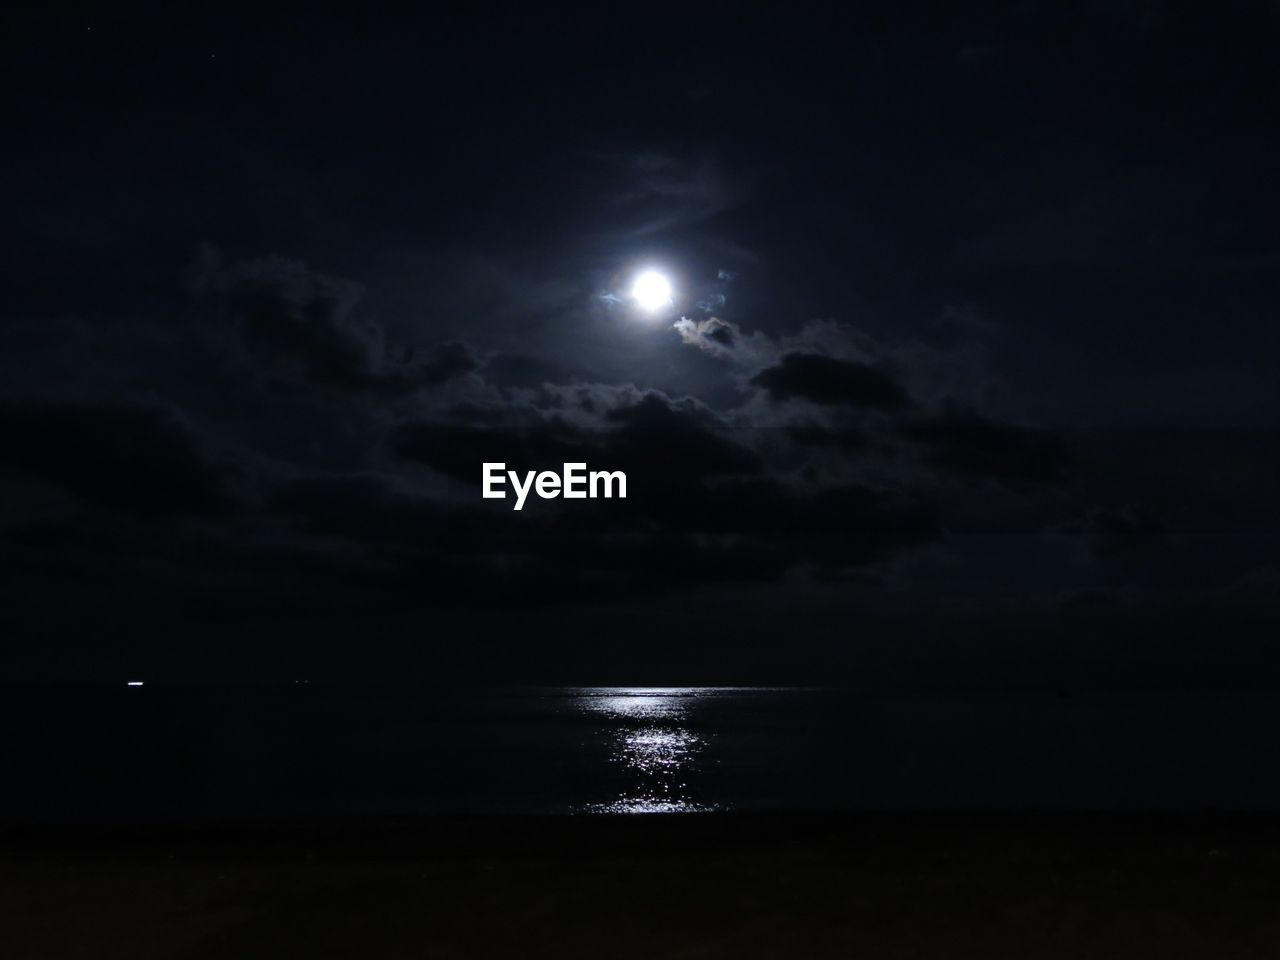 sky, night, moon, water, sea, moonlight, scenics - nature, beauty in nature, cloud - sky, full moon, tranquil scene, nature, tranquility, no people, astronomy, space, horizon over water, beach, horizon, dark, outdoors, planetary moon